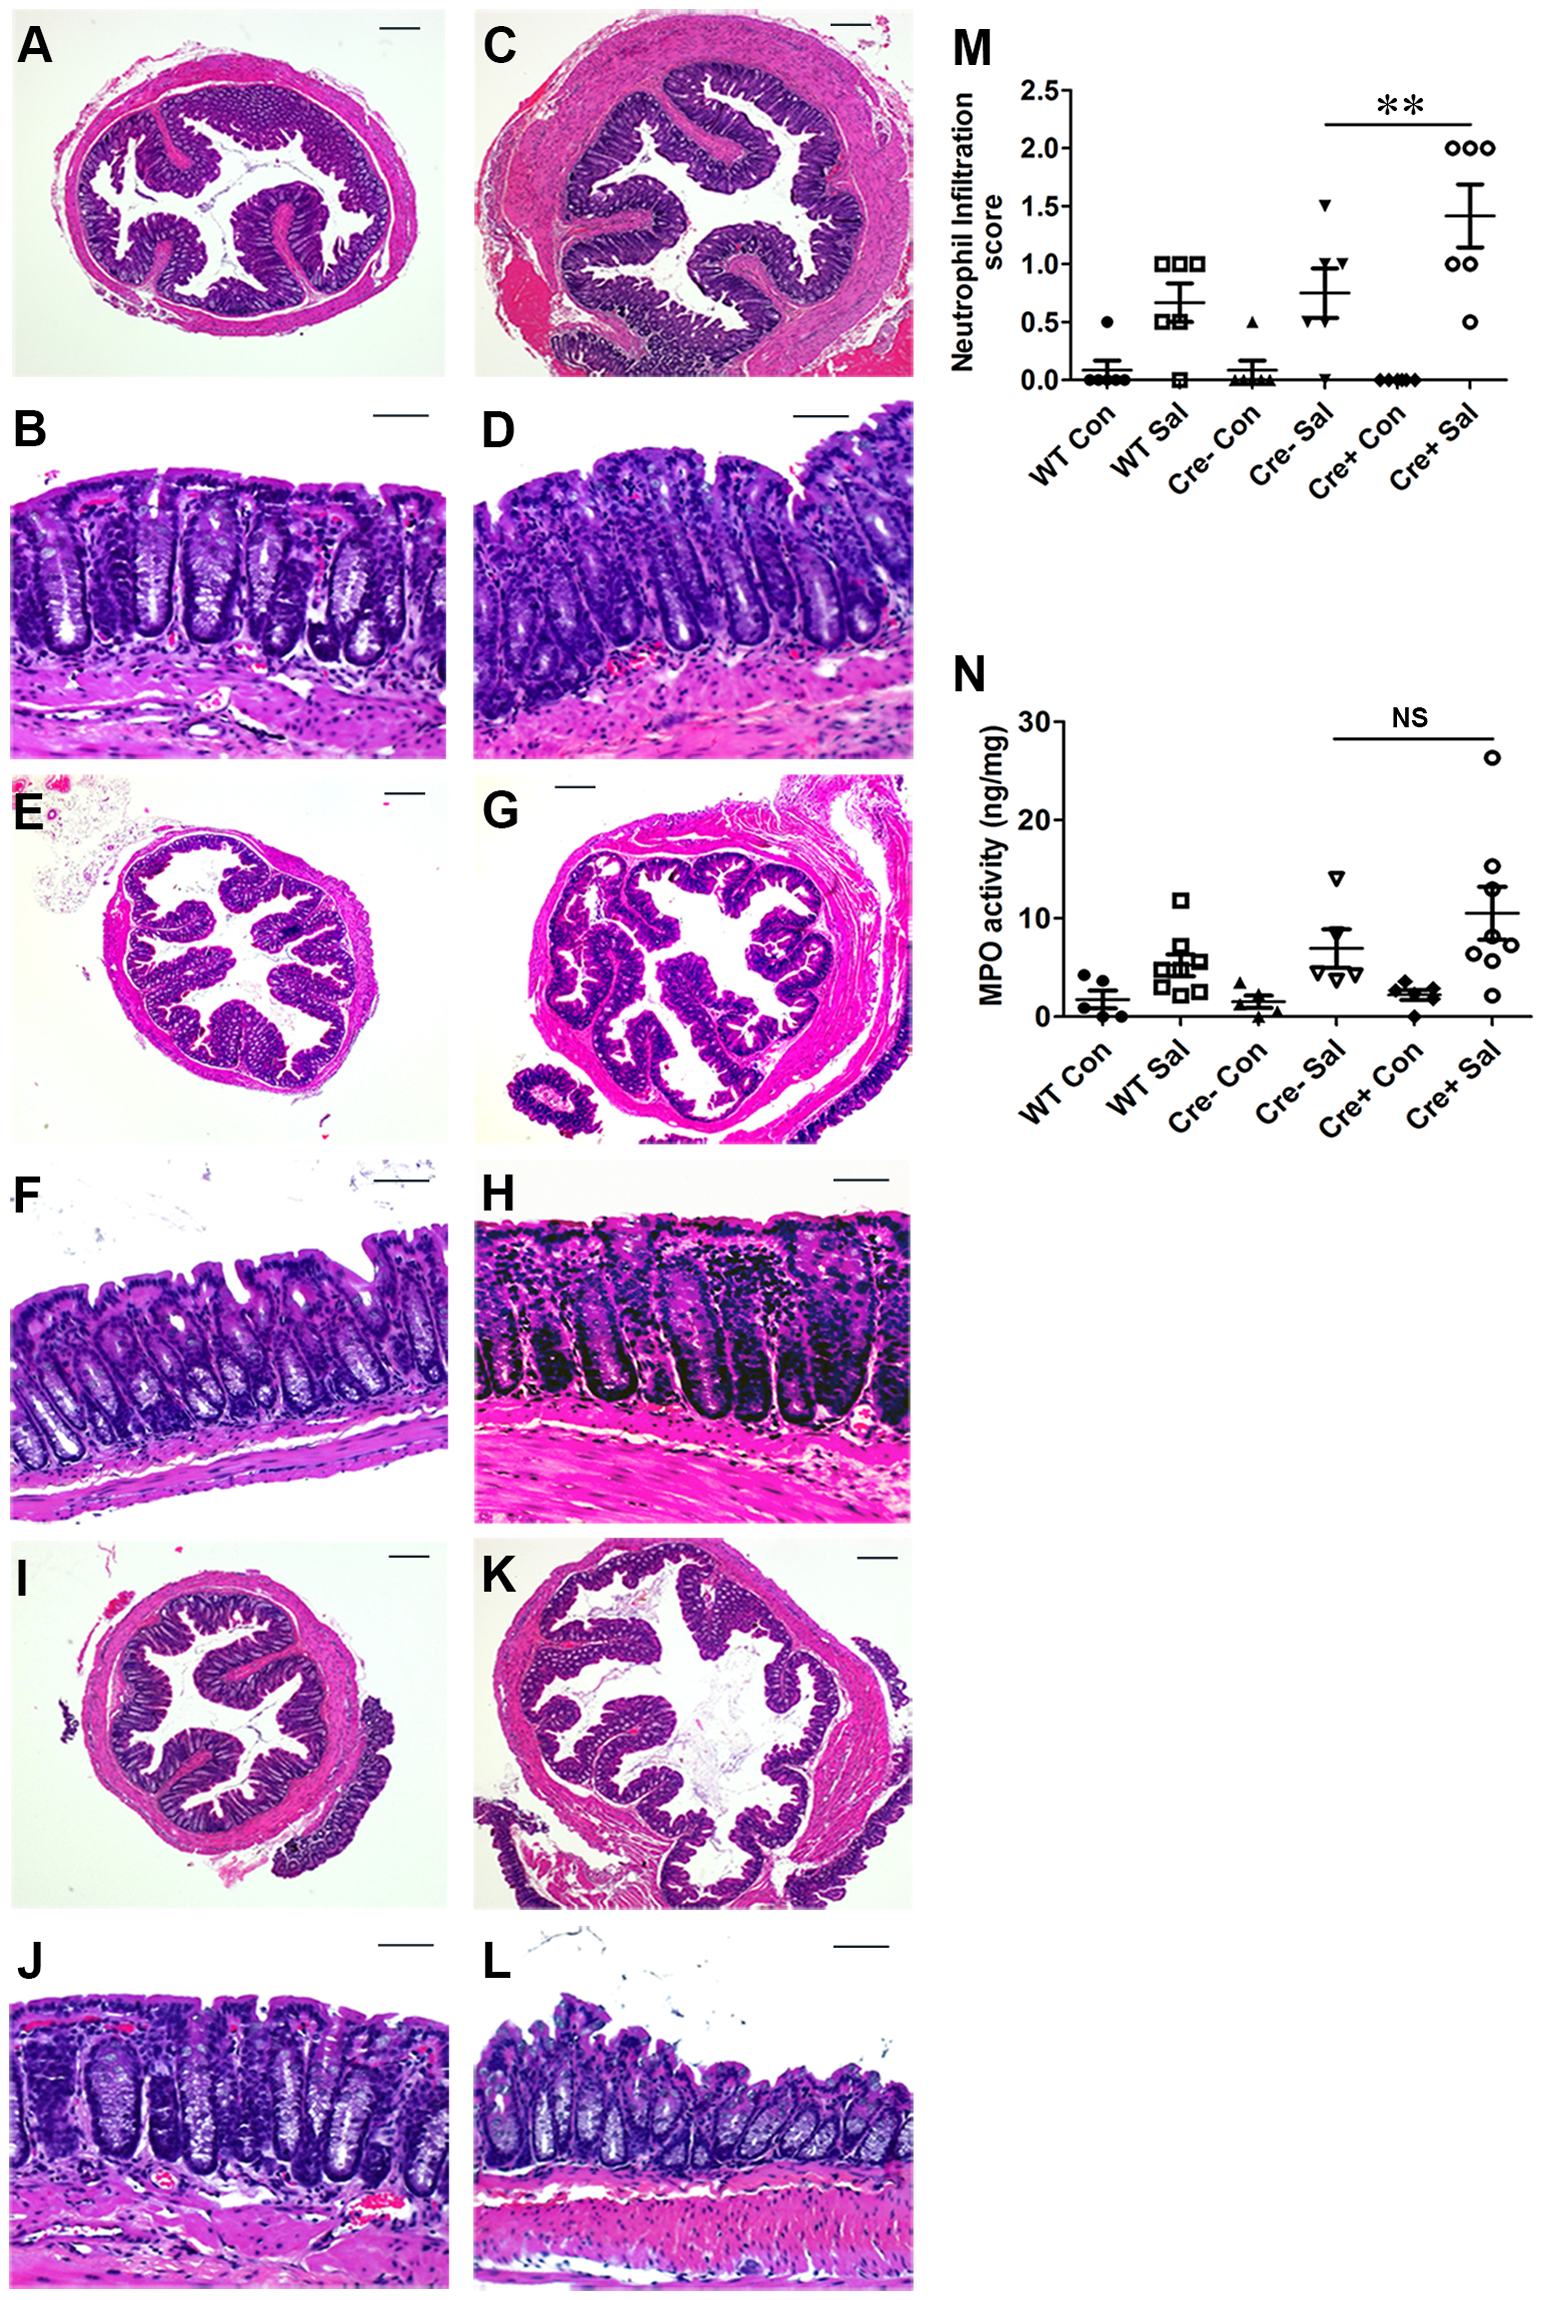 Colitis severity is more pronounced in PPARγVillinCre<sup>+</sup> mice than in wild-type mice.